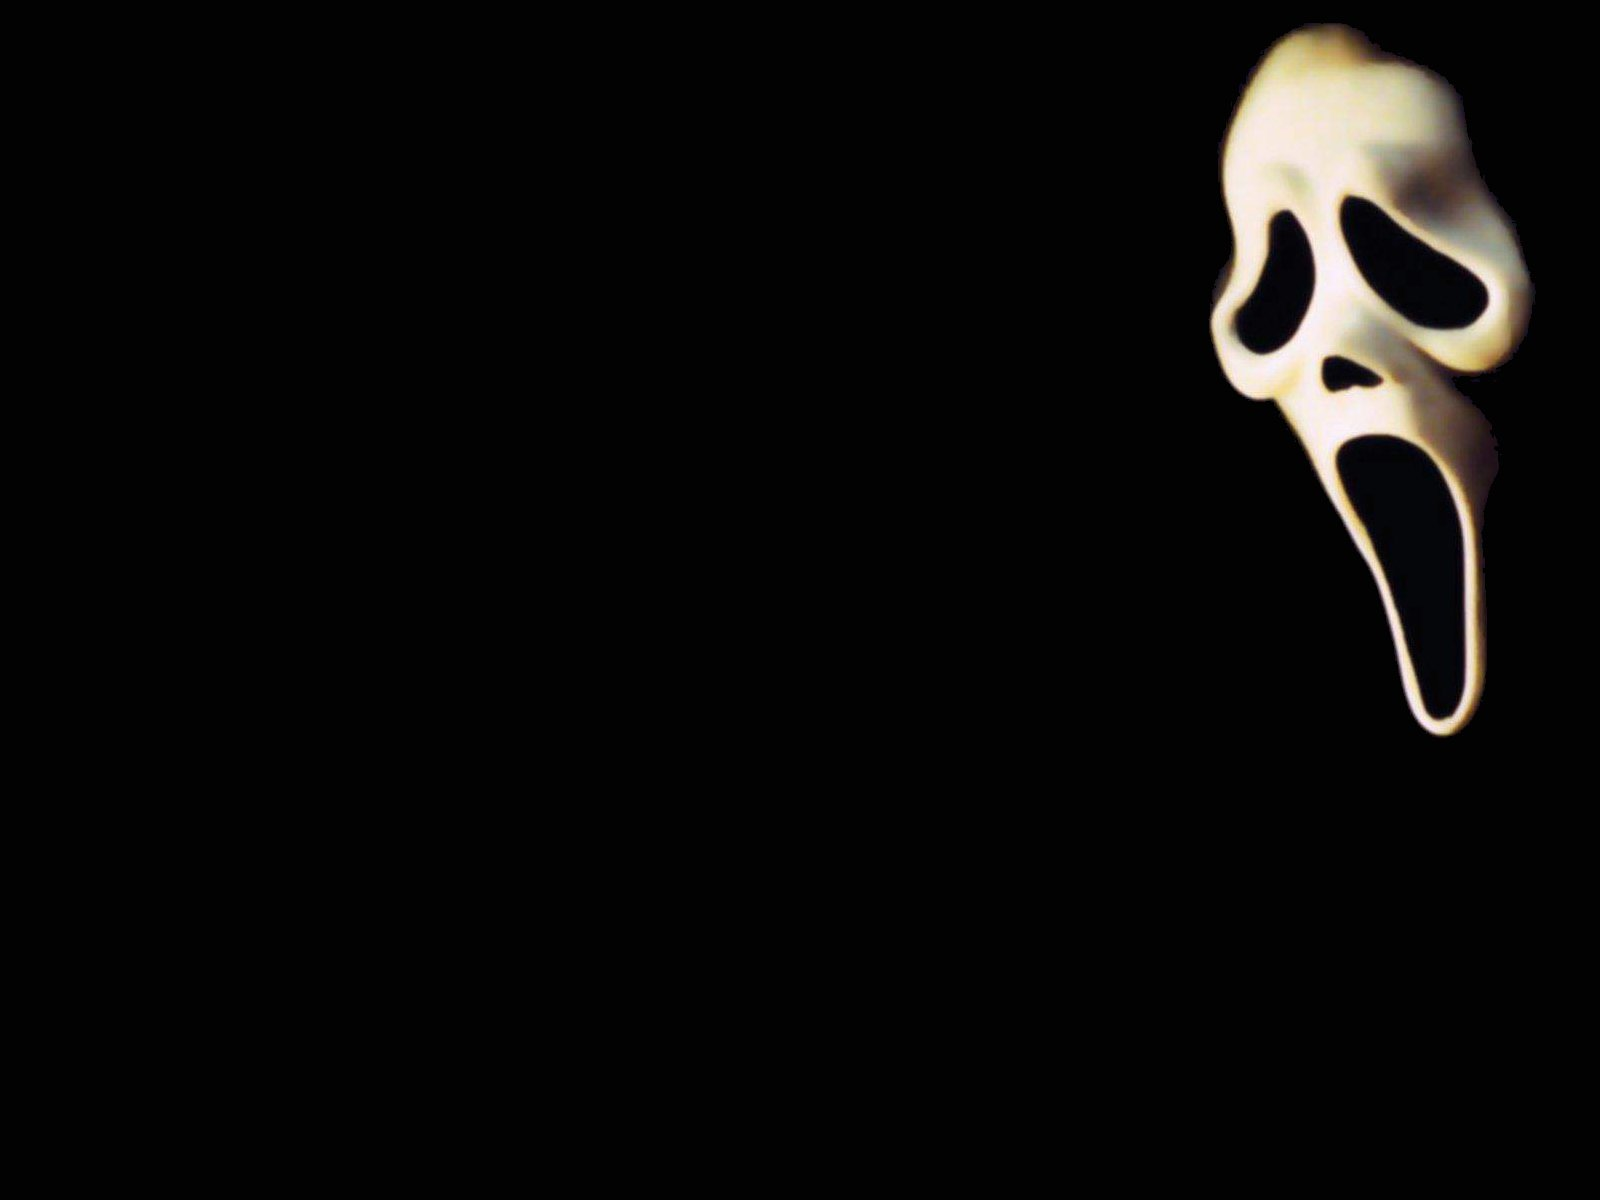 13 Scream 4 Hd Wallpapers Background Images Wallpaper Abyss